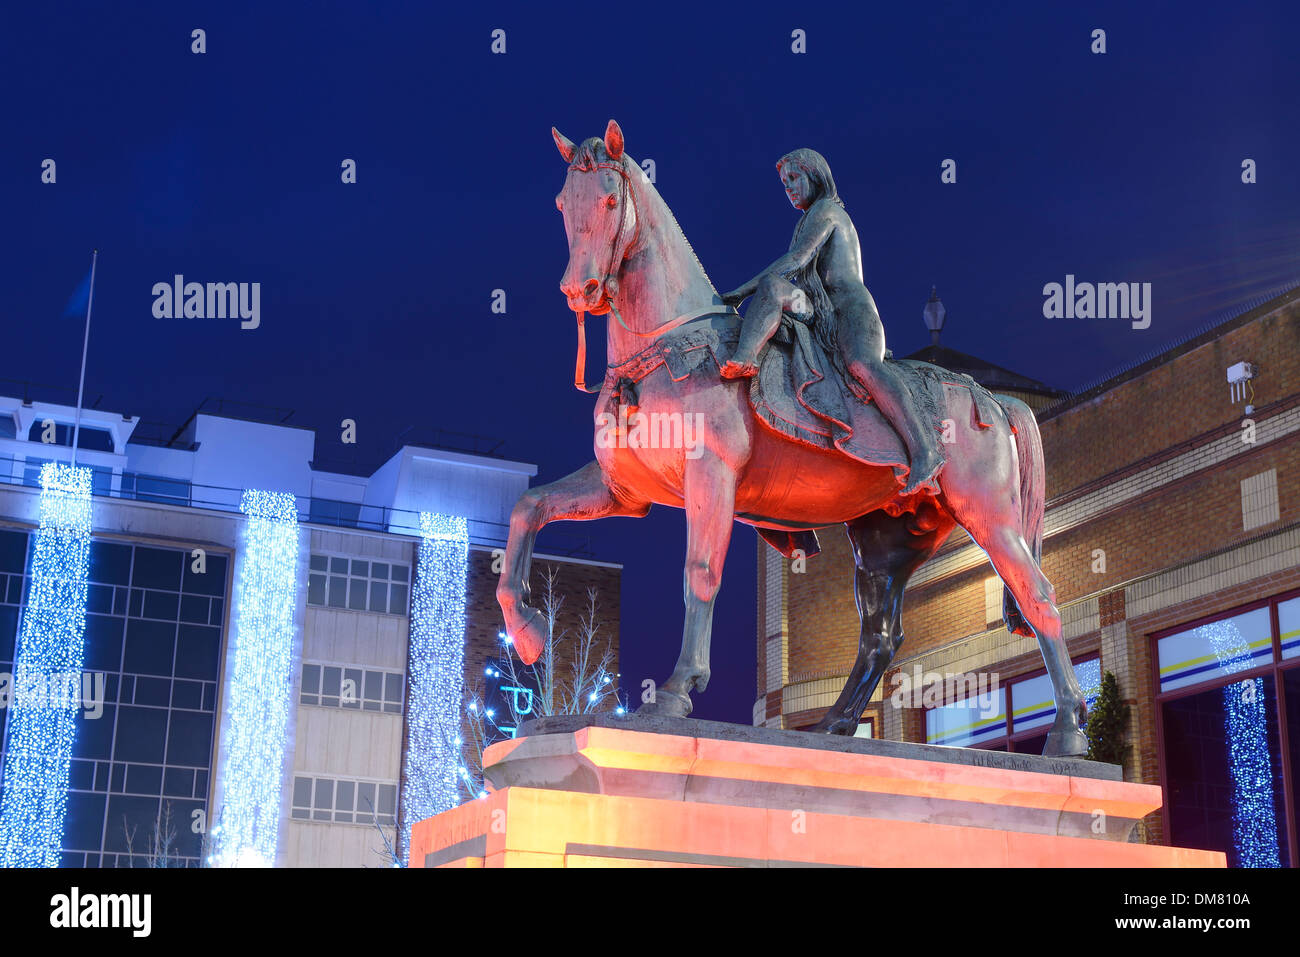 The Lady Godiva statue in Coventry city centre lit up at night - Stock Image